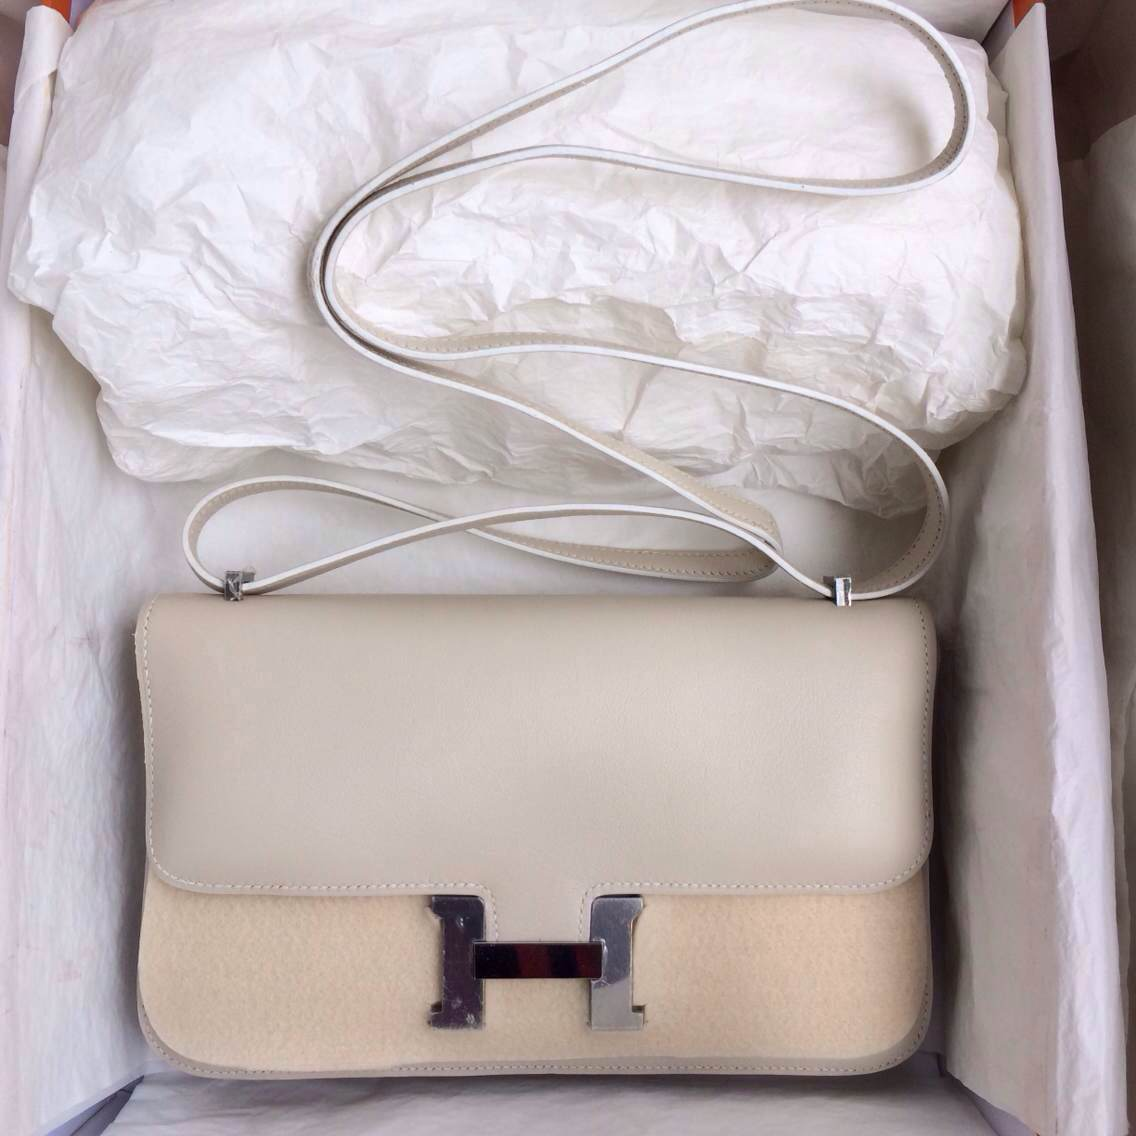 Hand Stitching Hermers Constance elan Bag26cm Beige Color Swift Leather